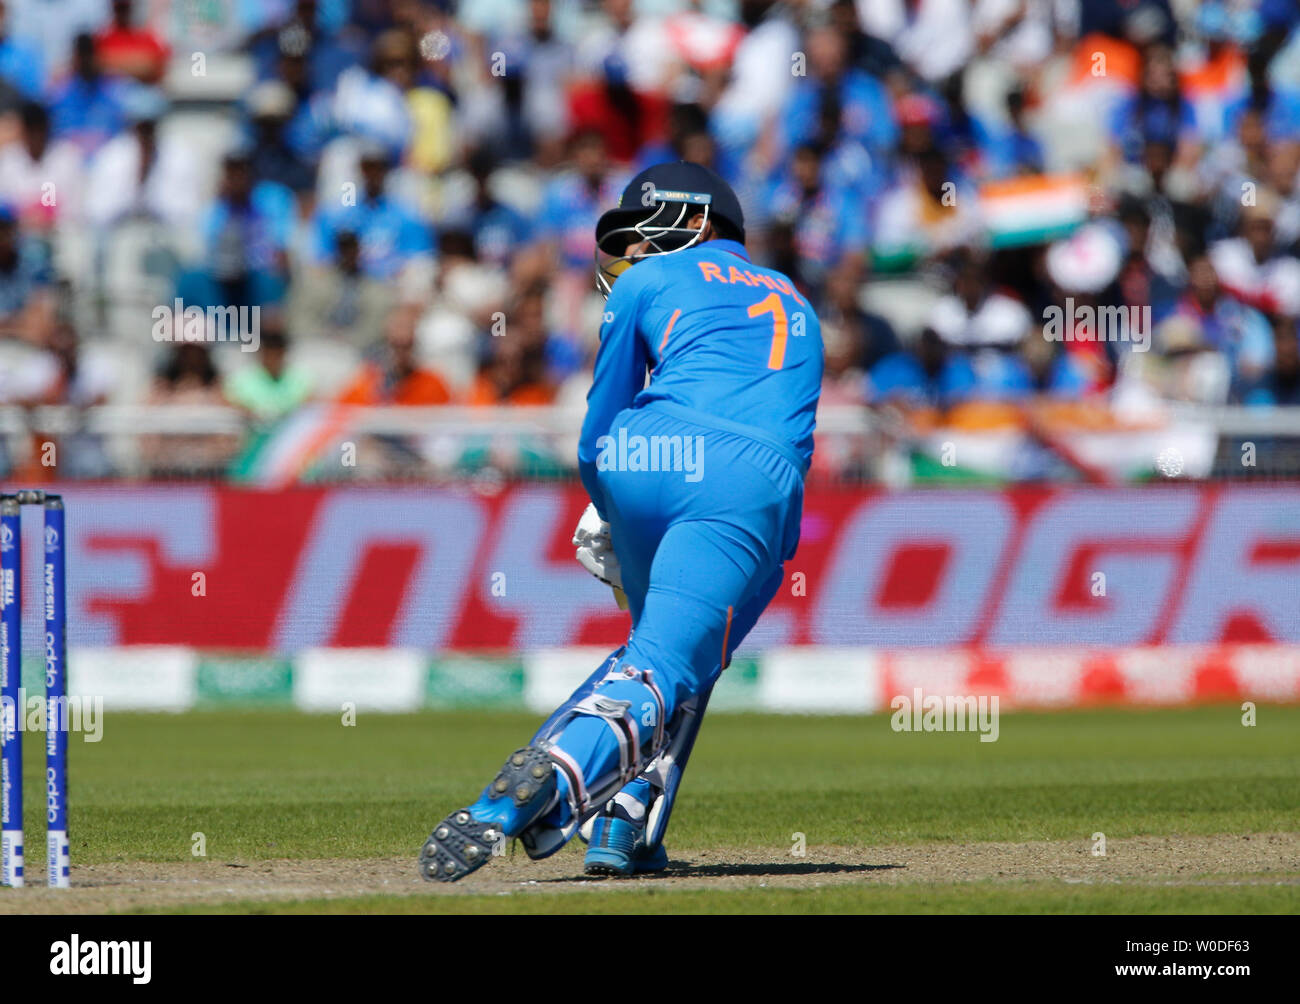 Old Trafford, Manchester, UK. 27th June, 2019. ICC World Cup cricket, West Indies versus India; KL Rahul of India nudges a shot down the leg side Credit: Action Plus Sports/Alamy Live News - Stock Image